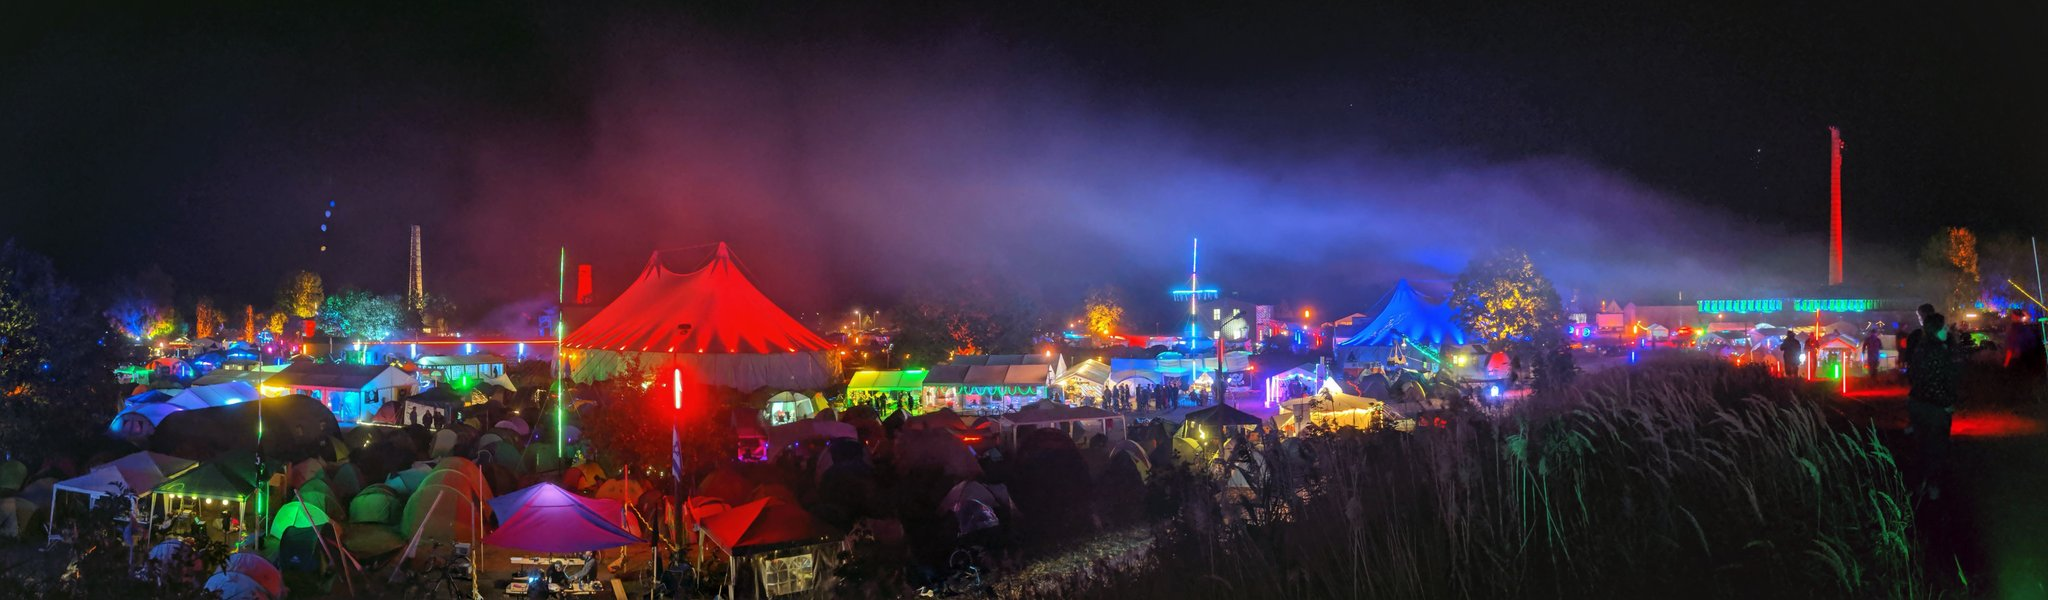 CCCamp: 5,000 Hackers Out Standing in Their Field